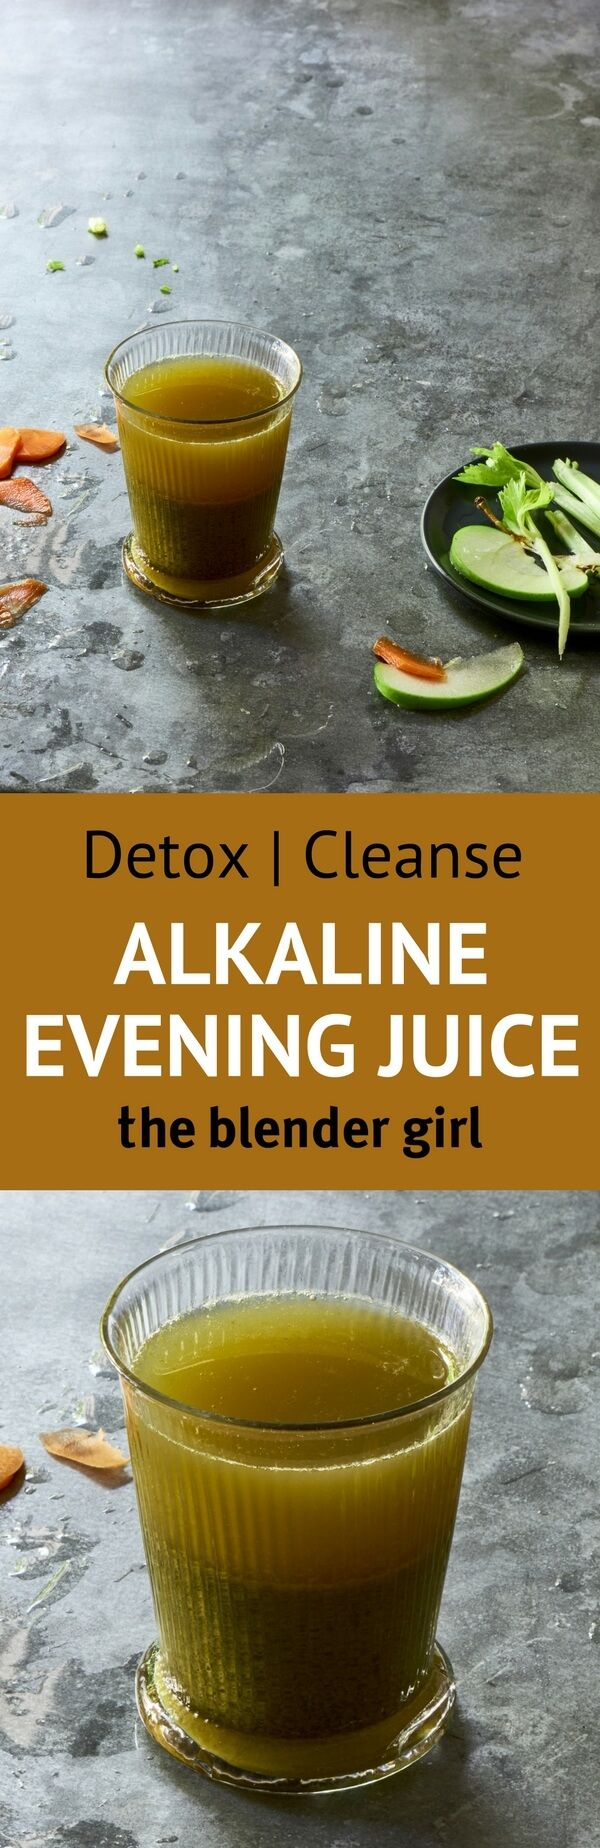 This alkaline green juice with spinach, carrots, apple, lemon, and burdock root is a great way to cleanse in the winter.